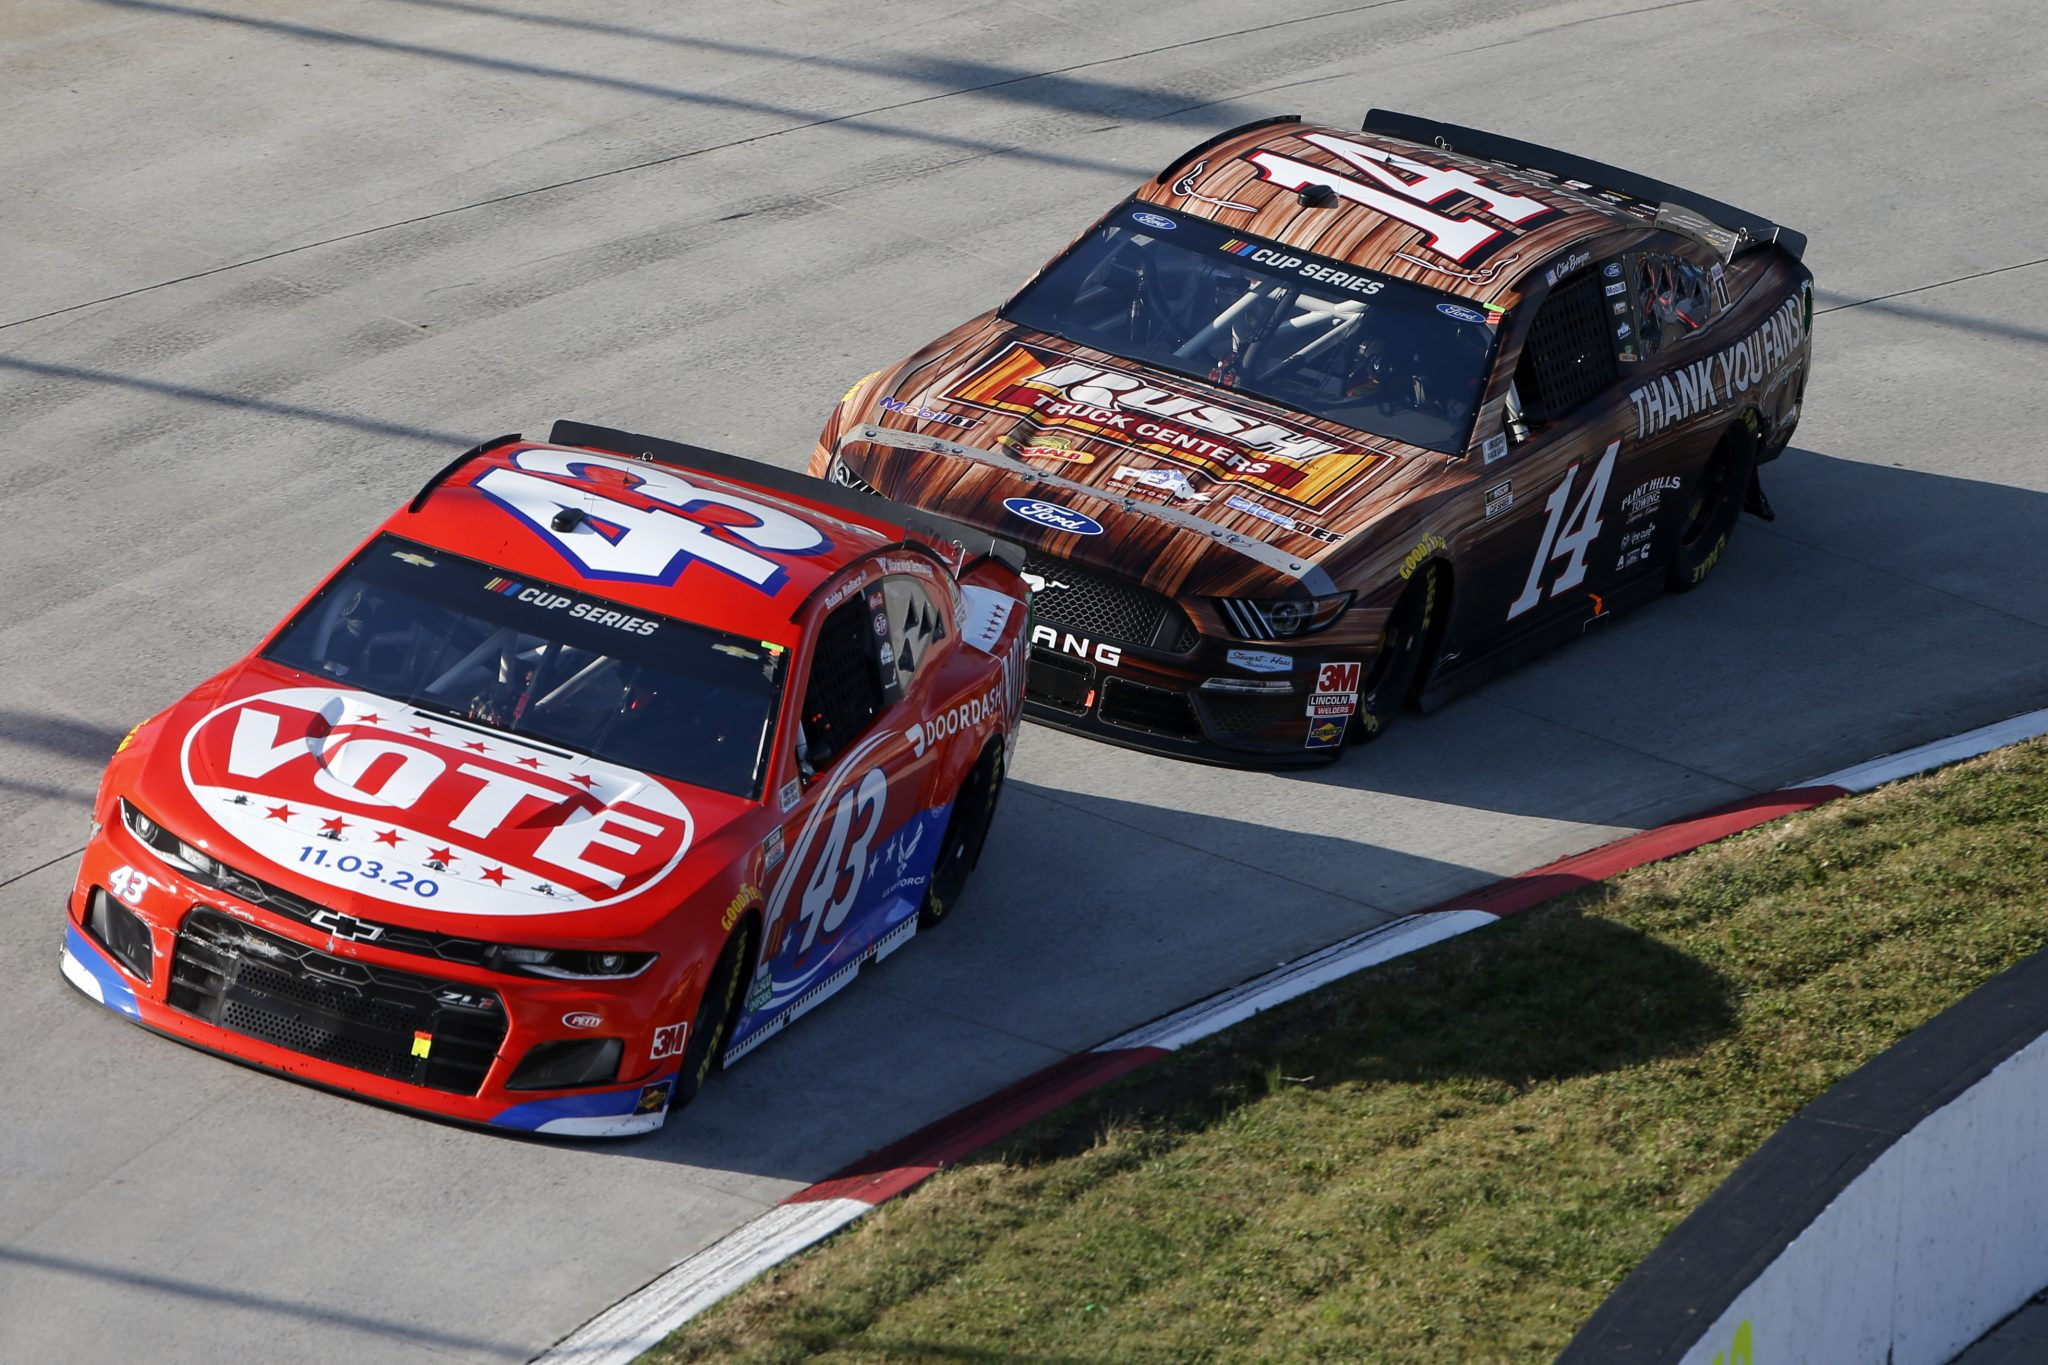 MARTINSVILLE, VIRGINIA - NOVEMBER 01: Bubba Wallace, driver of the #43 DoorDash Chevrolet, and Clint Bowyer, driver of the #14 Clint Bowyer Tribute Ford, race during the NASCAR Cup Series Xfinity 500 at Martinsville Speedway on November 01, 2020 in Martinsville, Virginia. (Photo by Brian Lawdermilk/Getty Images) | Getty Images